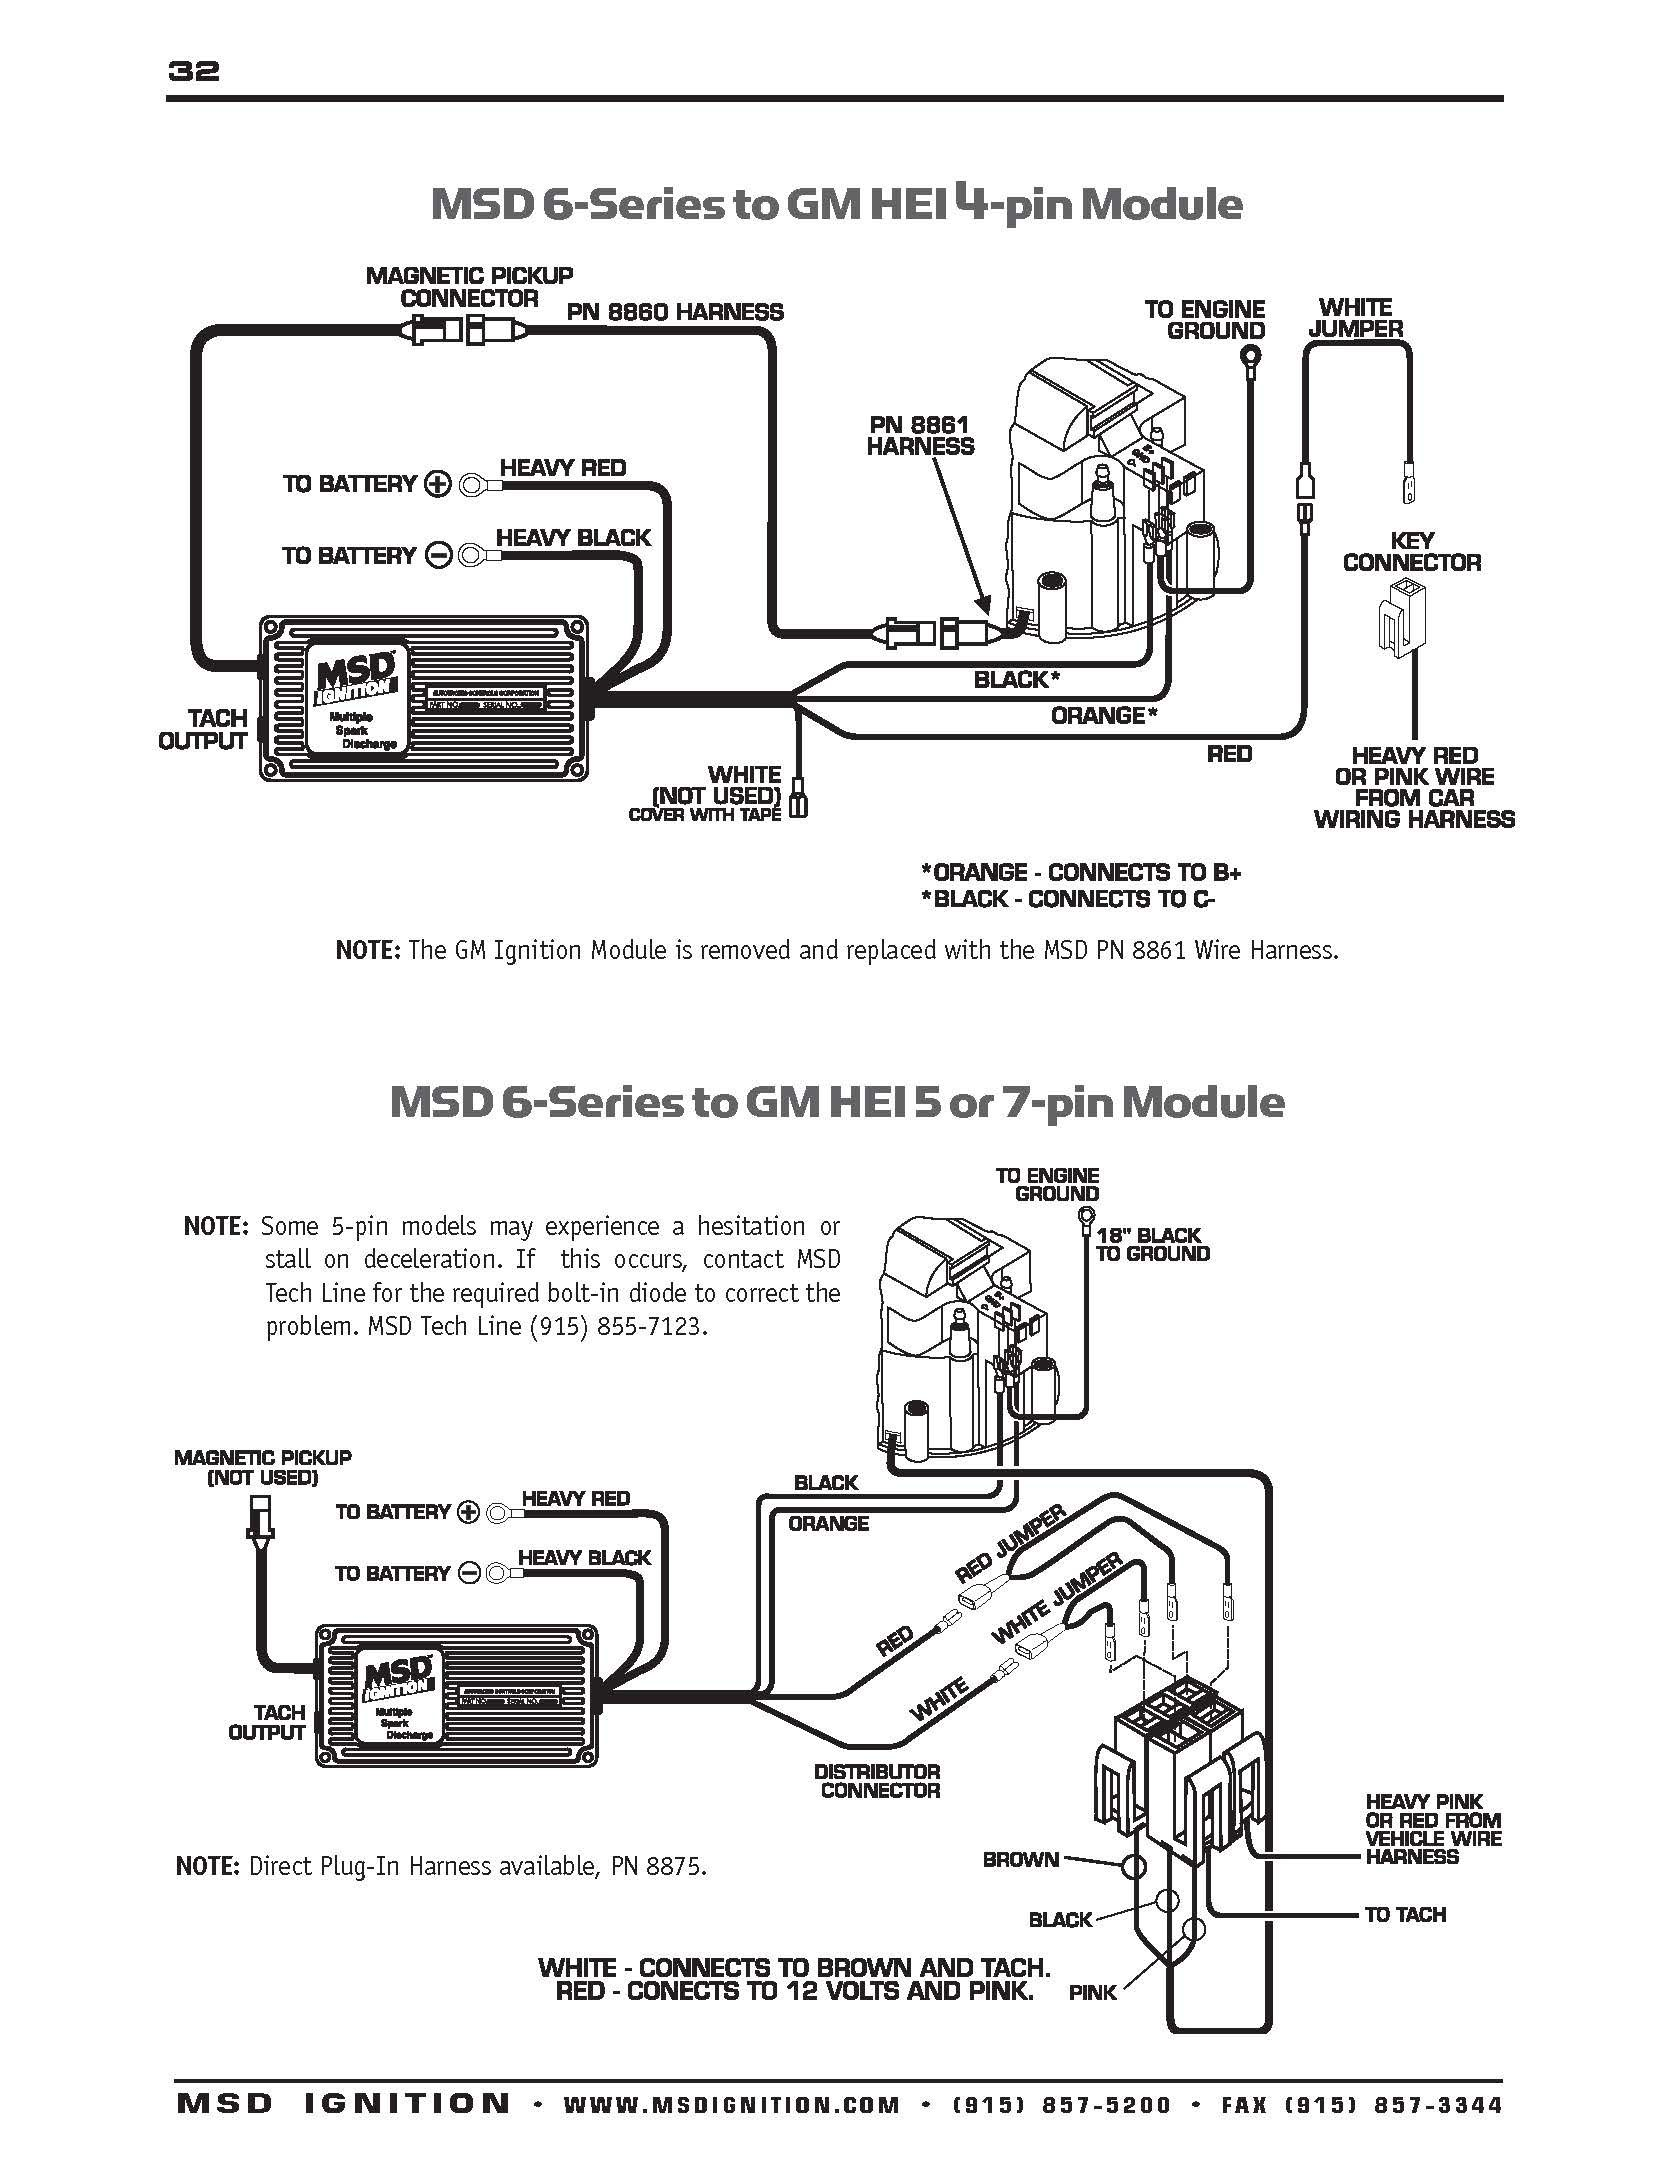 Distributor Wiring Diagram : distributor, wiring, diagram, Distributor, Wiring, Diagram, Diagram,, Automotive